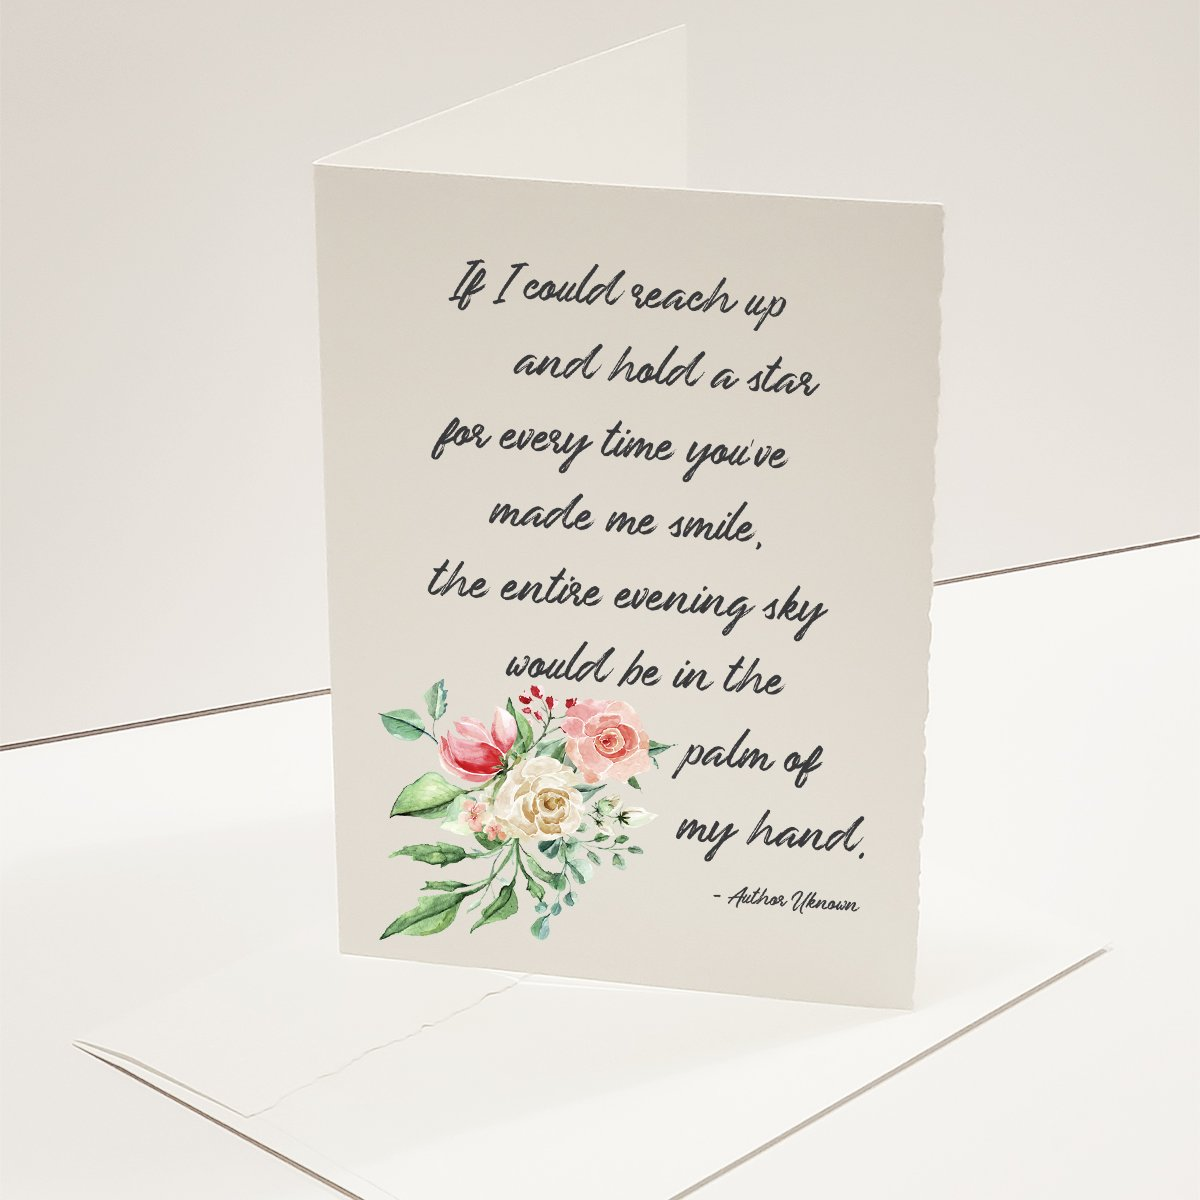 If I could reach up - Greeting Card - Netties Expressions